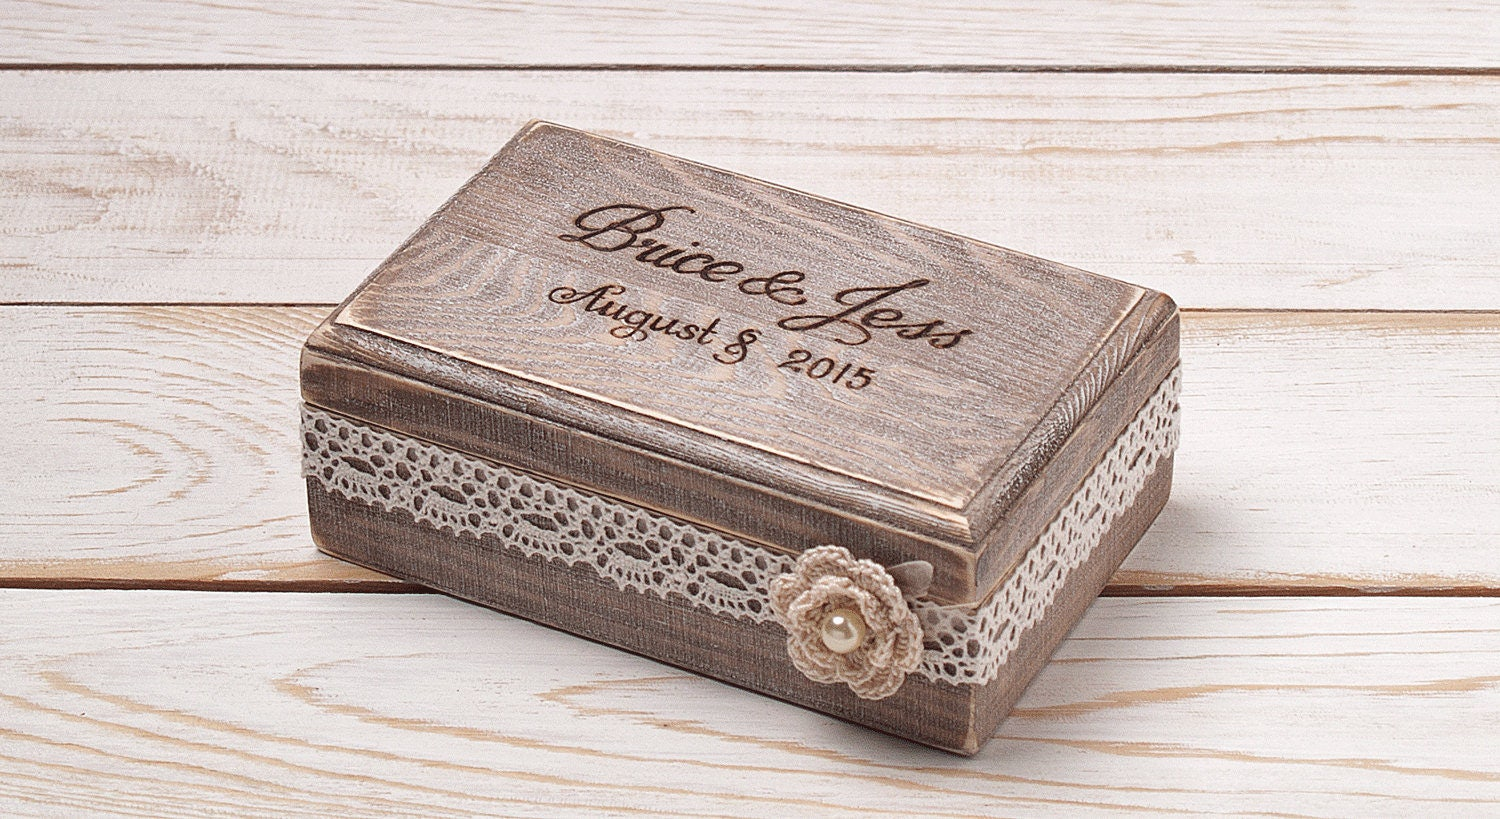 Ring bearer box wedding ring box ring holder custom wooden box for Wedding ring holder box